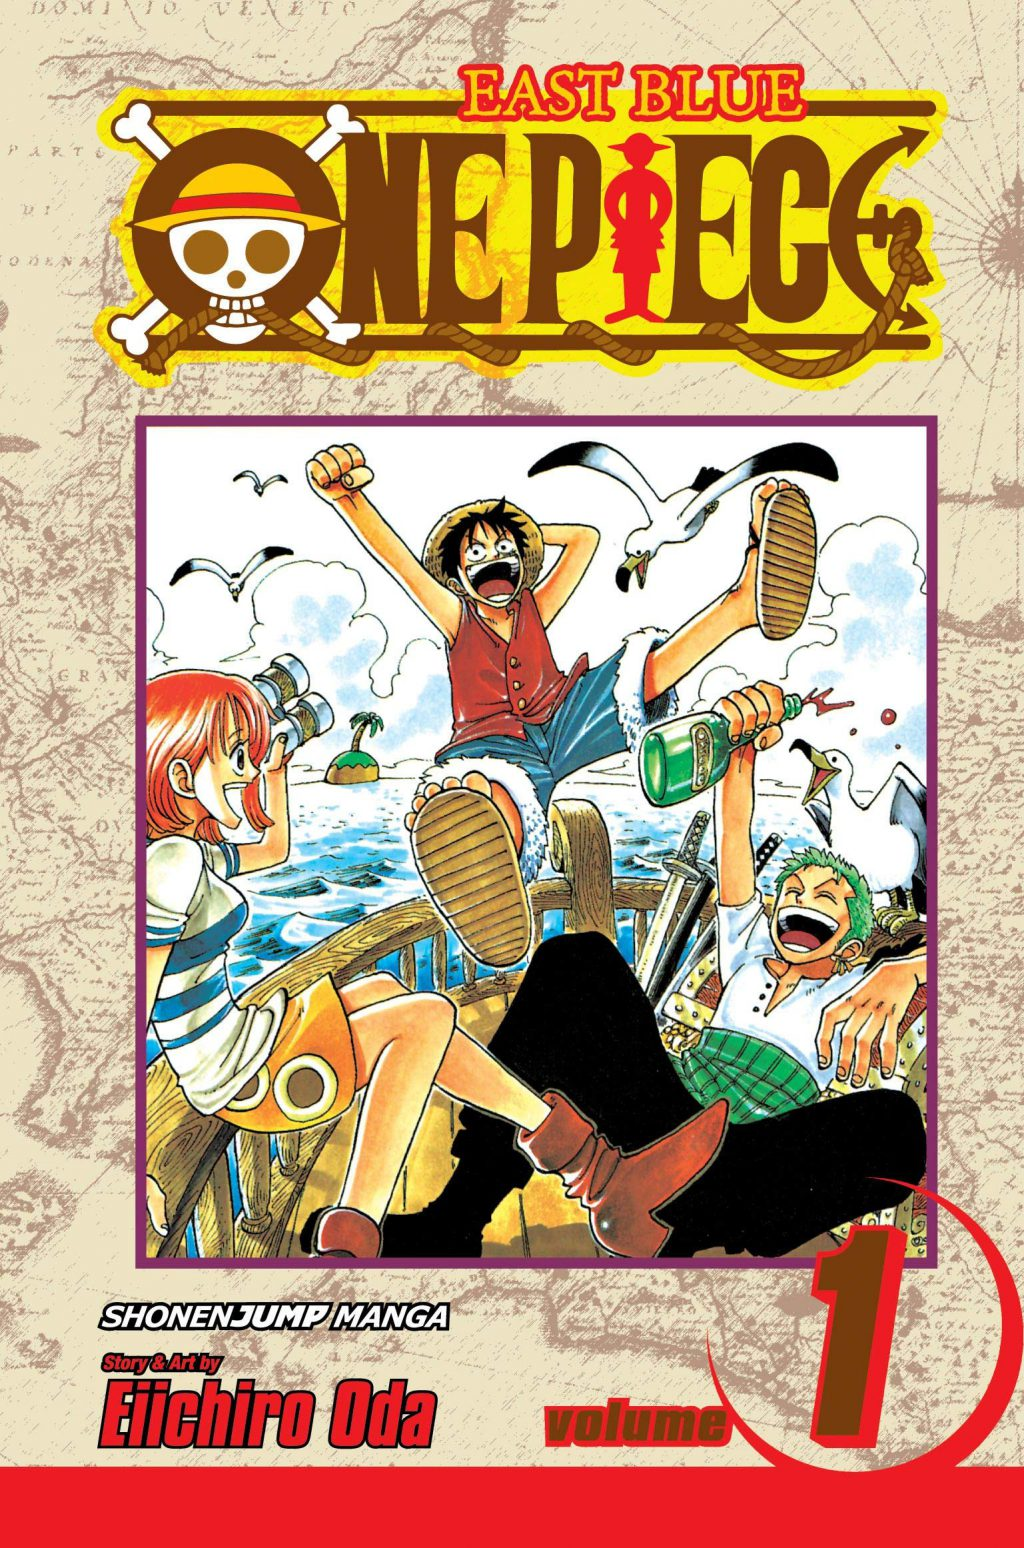 Read Manga Online One Piece Chapter 1023 Release Date, Spoiler and Everything you Need To Know